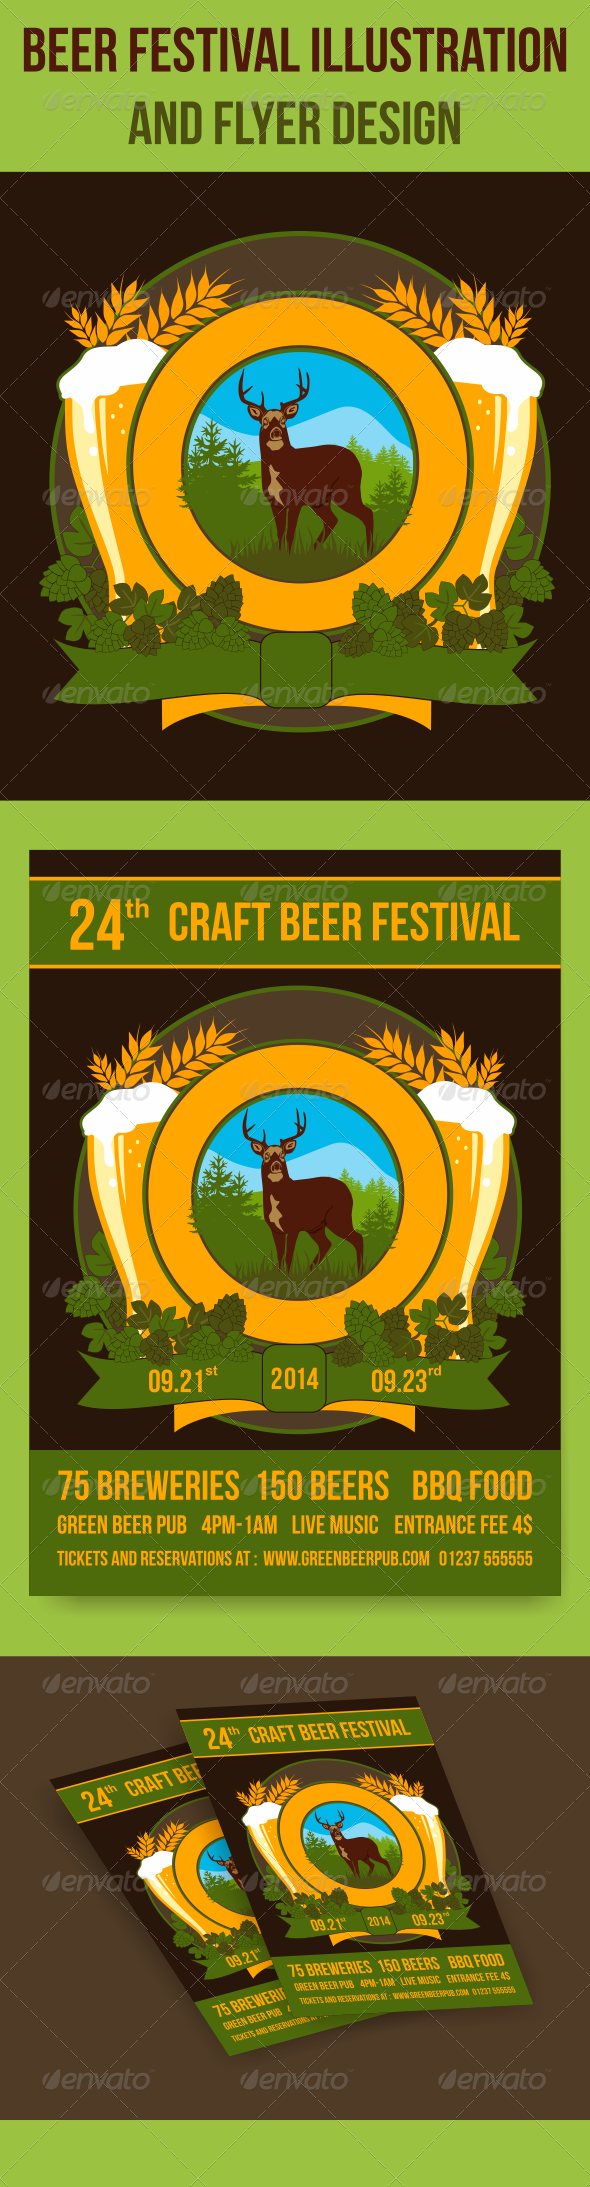 Beer Festival Illustration and Flyer Design - Decorative Vectors